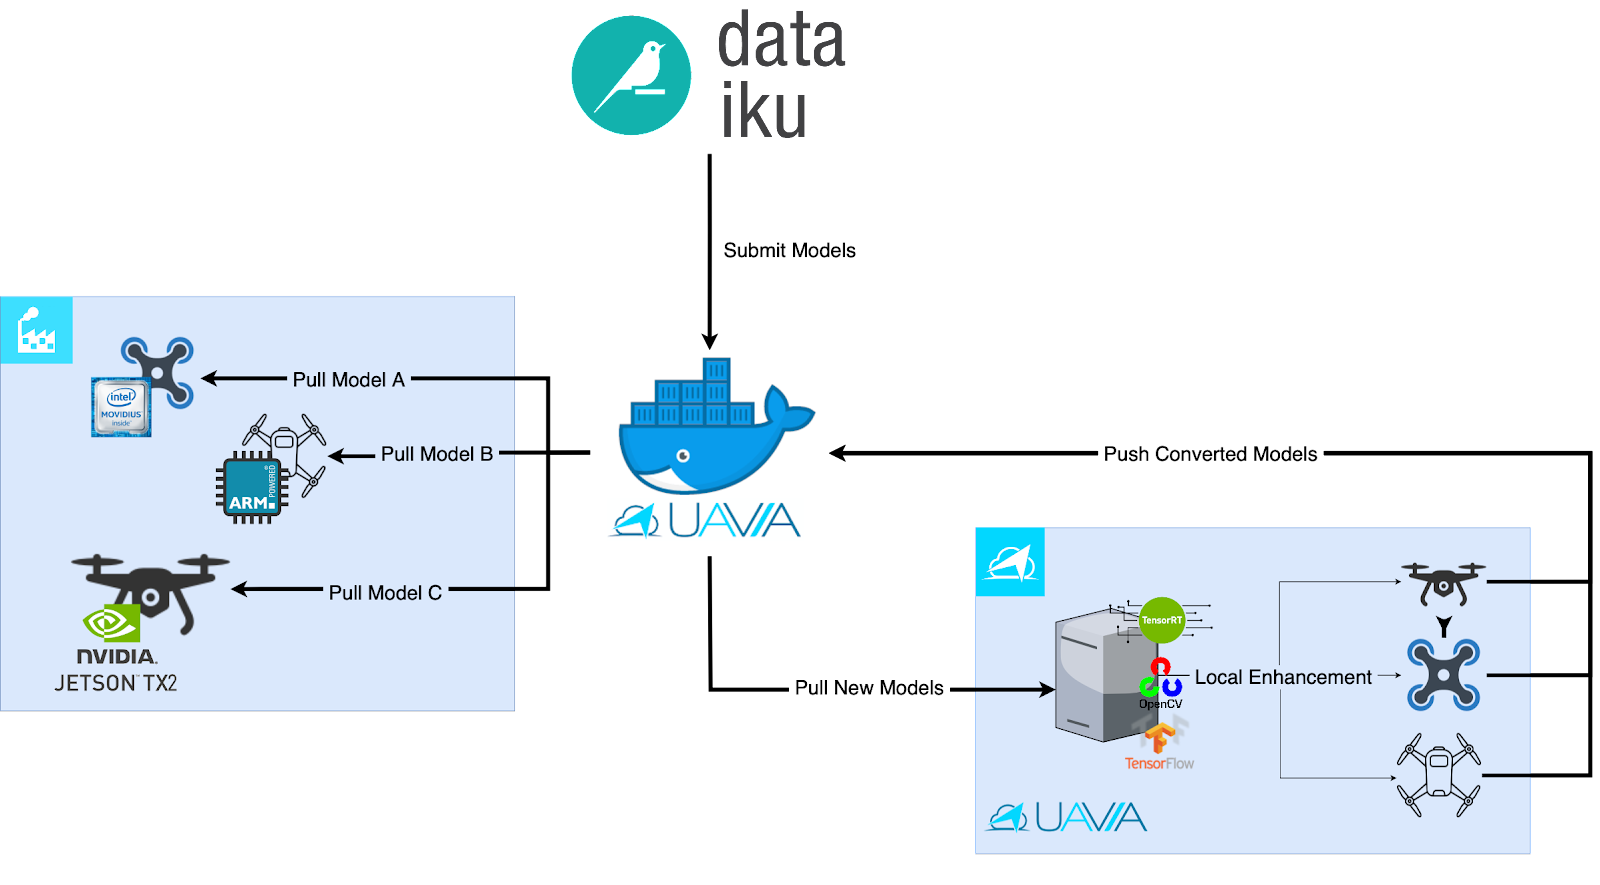 flow diagram presenting UAVIA's model optimization pipeline to deploy Dataiku's trained models on drones